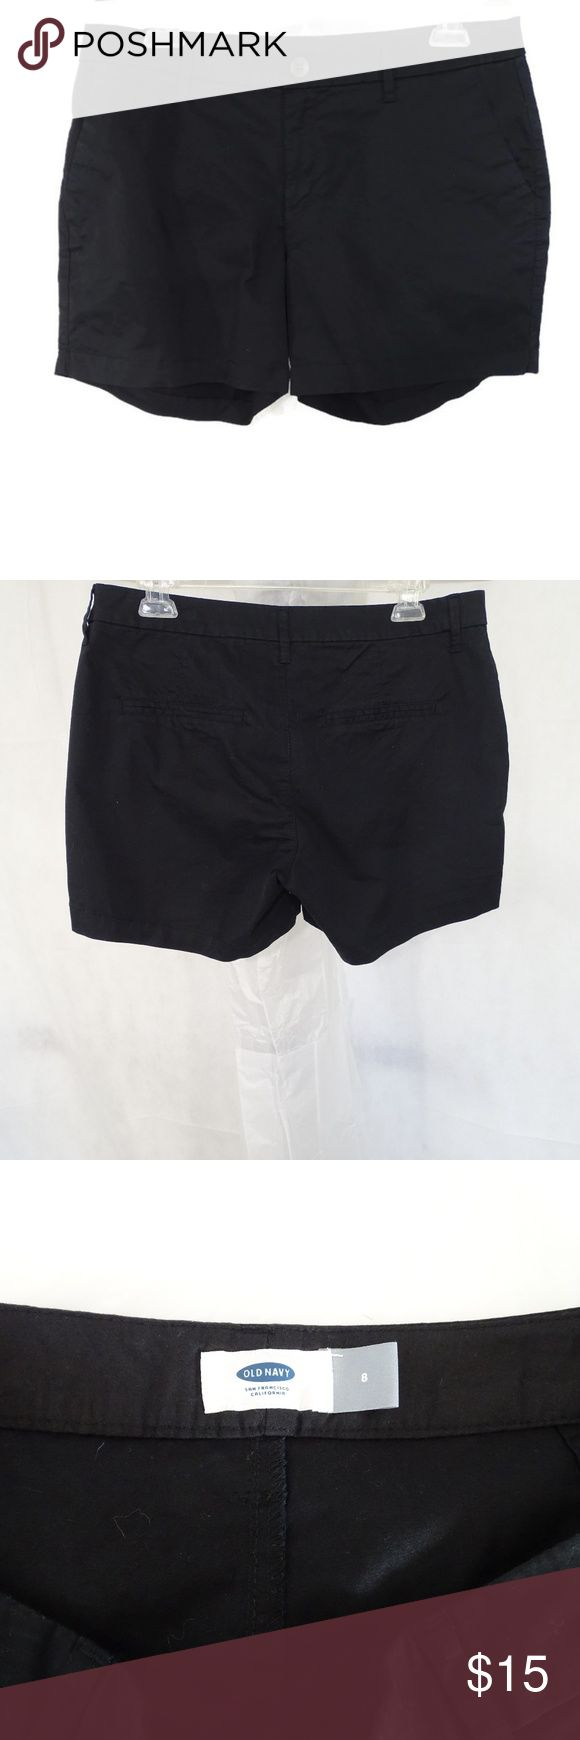 OLD NAVY Shorts Women Size 8 Black Stretch Cotton ITEM DESCRIPTION:  Old Navy Shorts with 2 Pockets  Women Size: 8  Color: Black  Pattern: solid  Closure: Button and Zipper  Fabric: 97% Cotton 3% Spandex  Made in: Vietnam  ITEM CONDITION:  New without Tags…MSRP $22.94 (New & Unworn; however, the tags were pulled off.)  ITEM MEASUREMENTS (Laying flat):  Waist: 17 in  Hips: 20 in  Inseam: 5 in  Rise: 9 in Old Navy Shorts